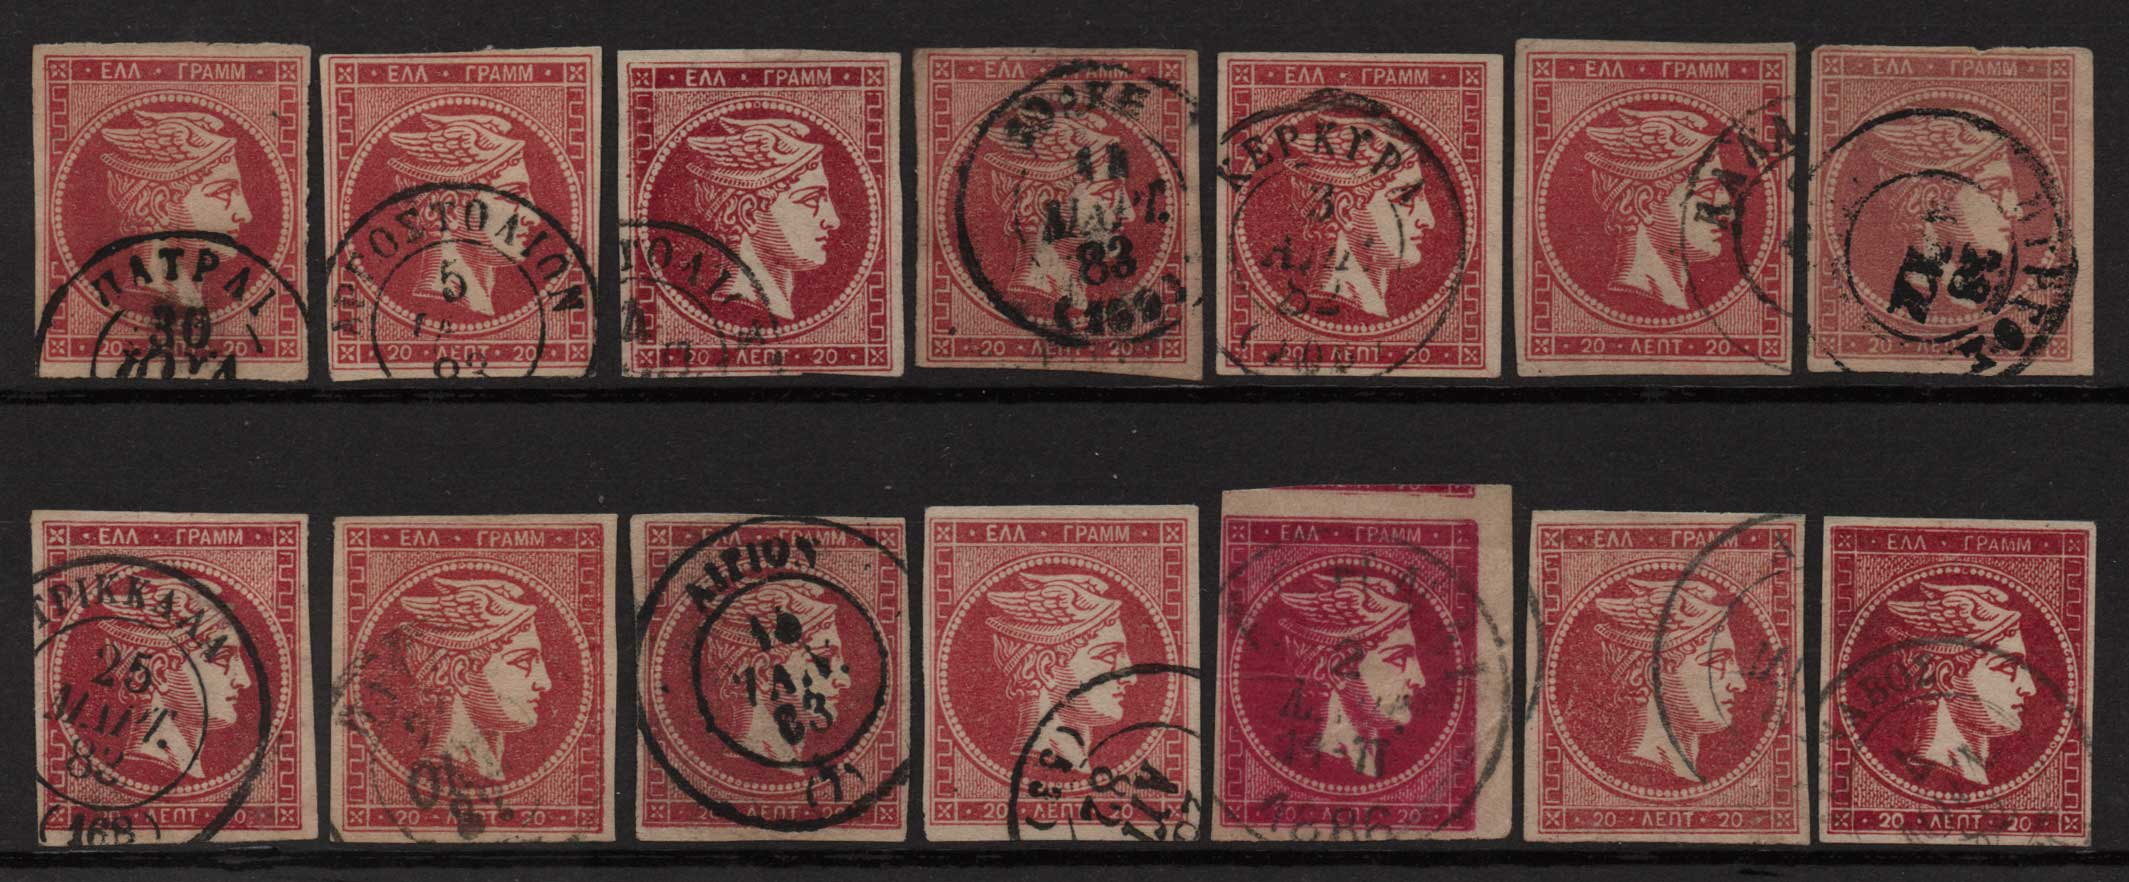 Lot 17 - GREECE-  LARGE HERMES HEAD large hermes head -  Athens Auctions Public Auction 64 General Stamp Sale